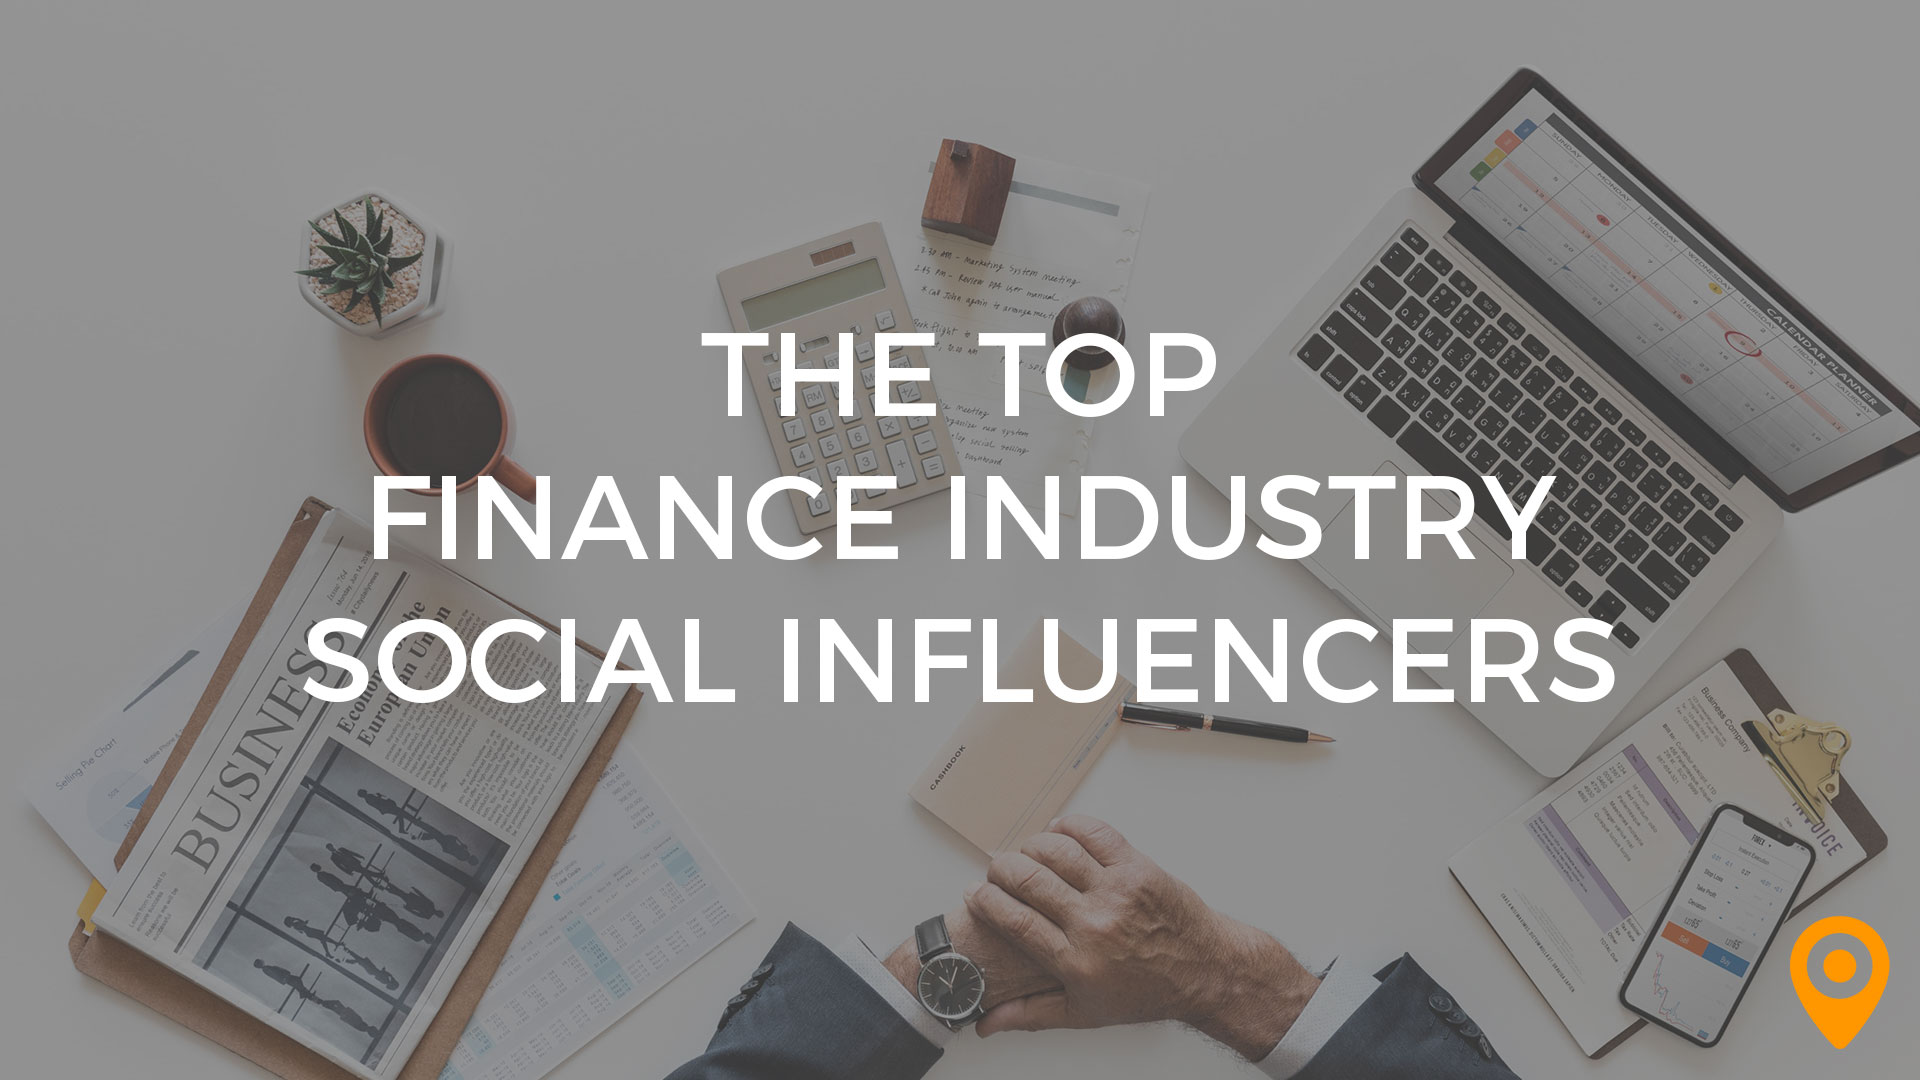 Top Finance Industry Social Influencers